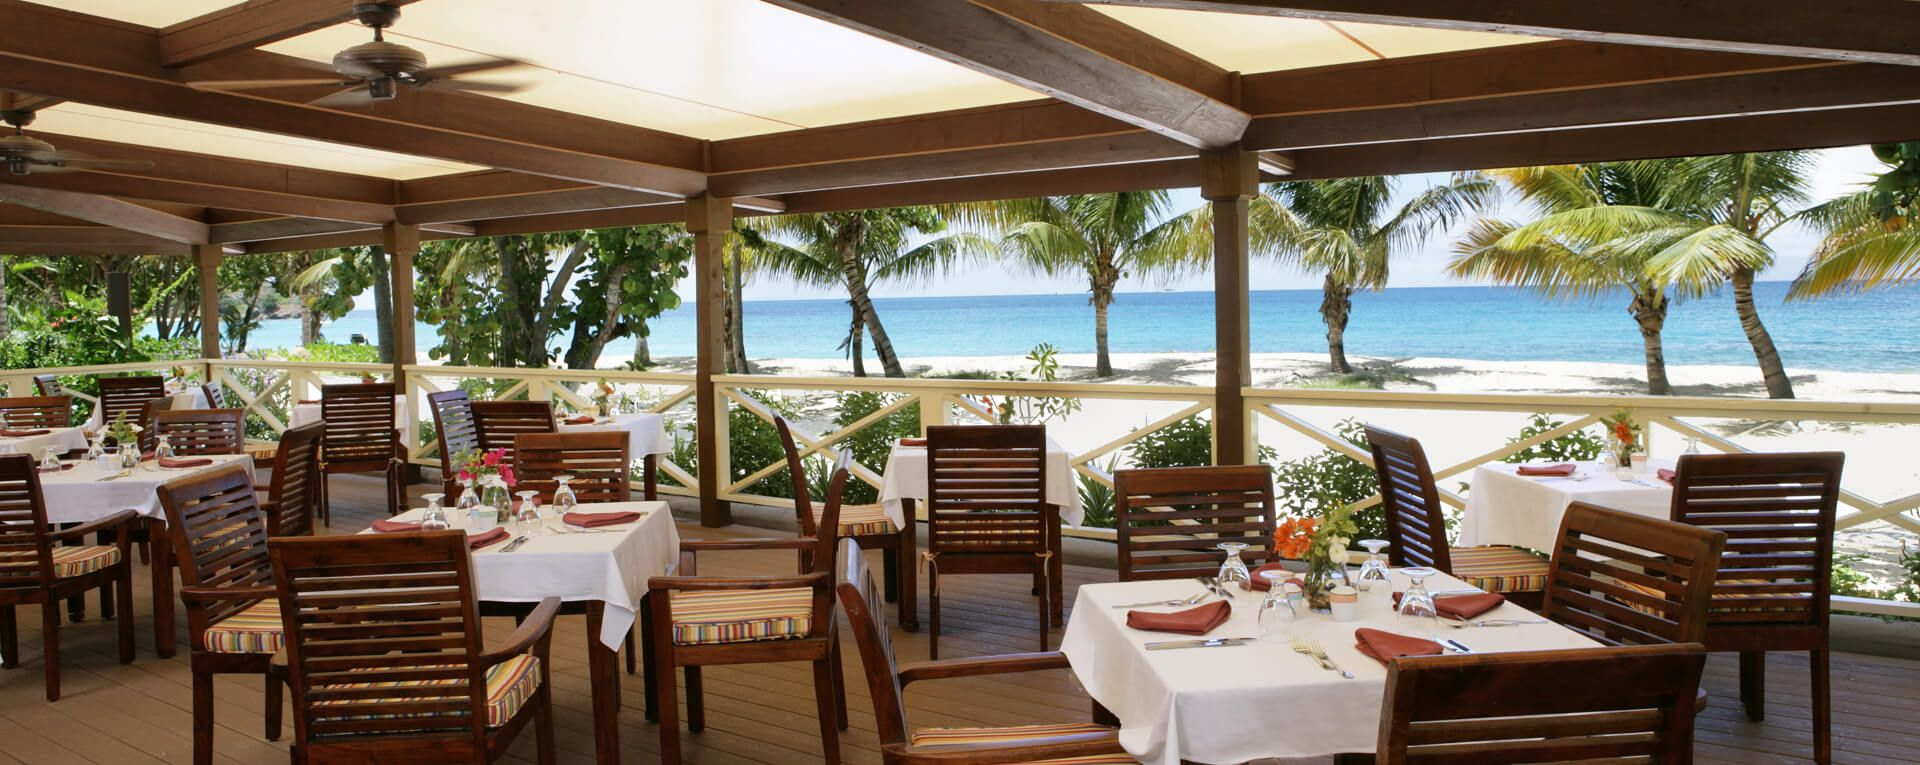 Galley Bay Resort & Spa